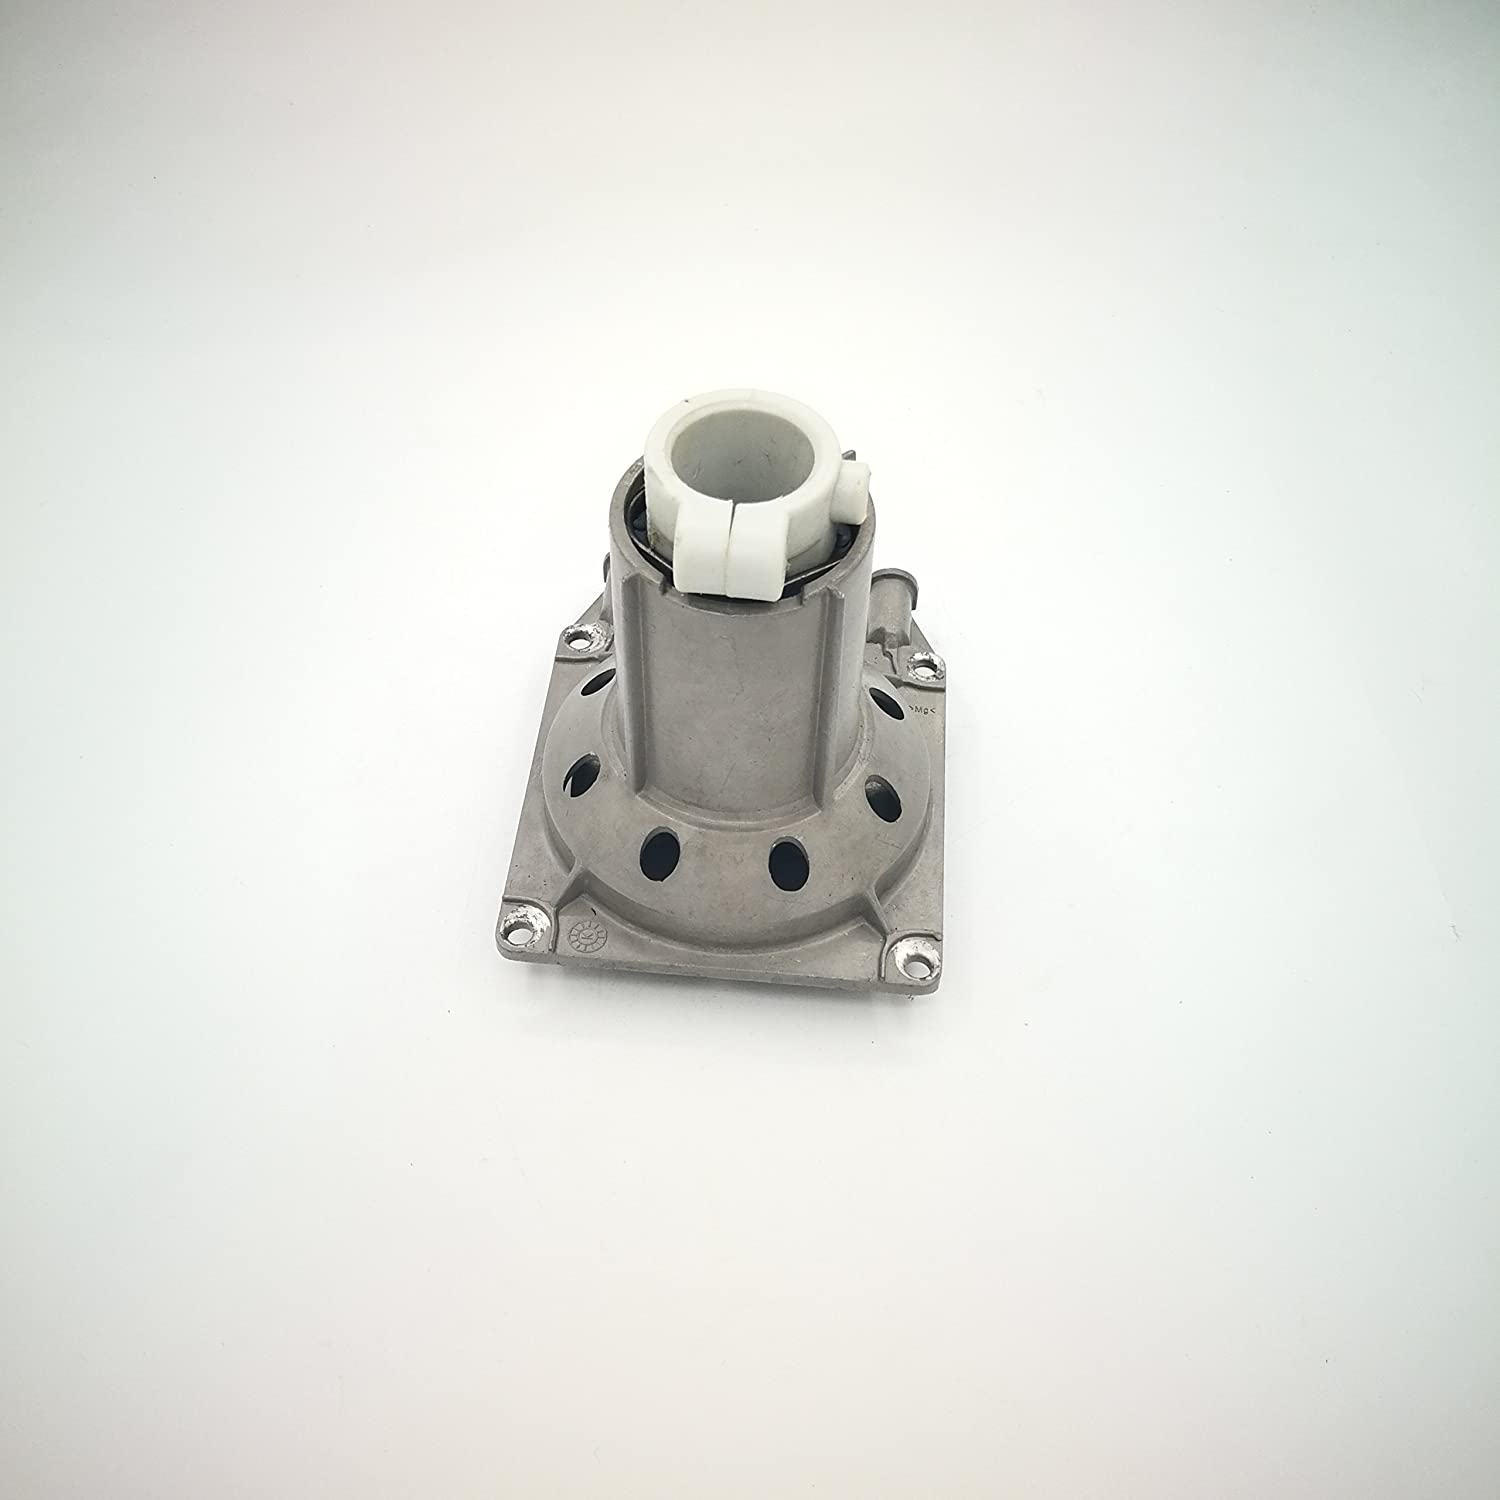 79403a5faf32b Amazon.com: shiosheng Clutch Drum and housing Replacement for Stihl ...